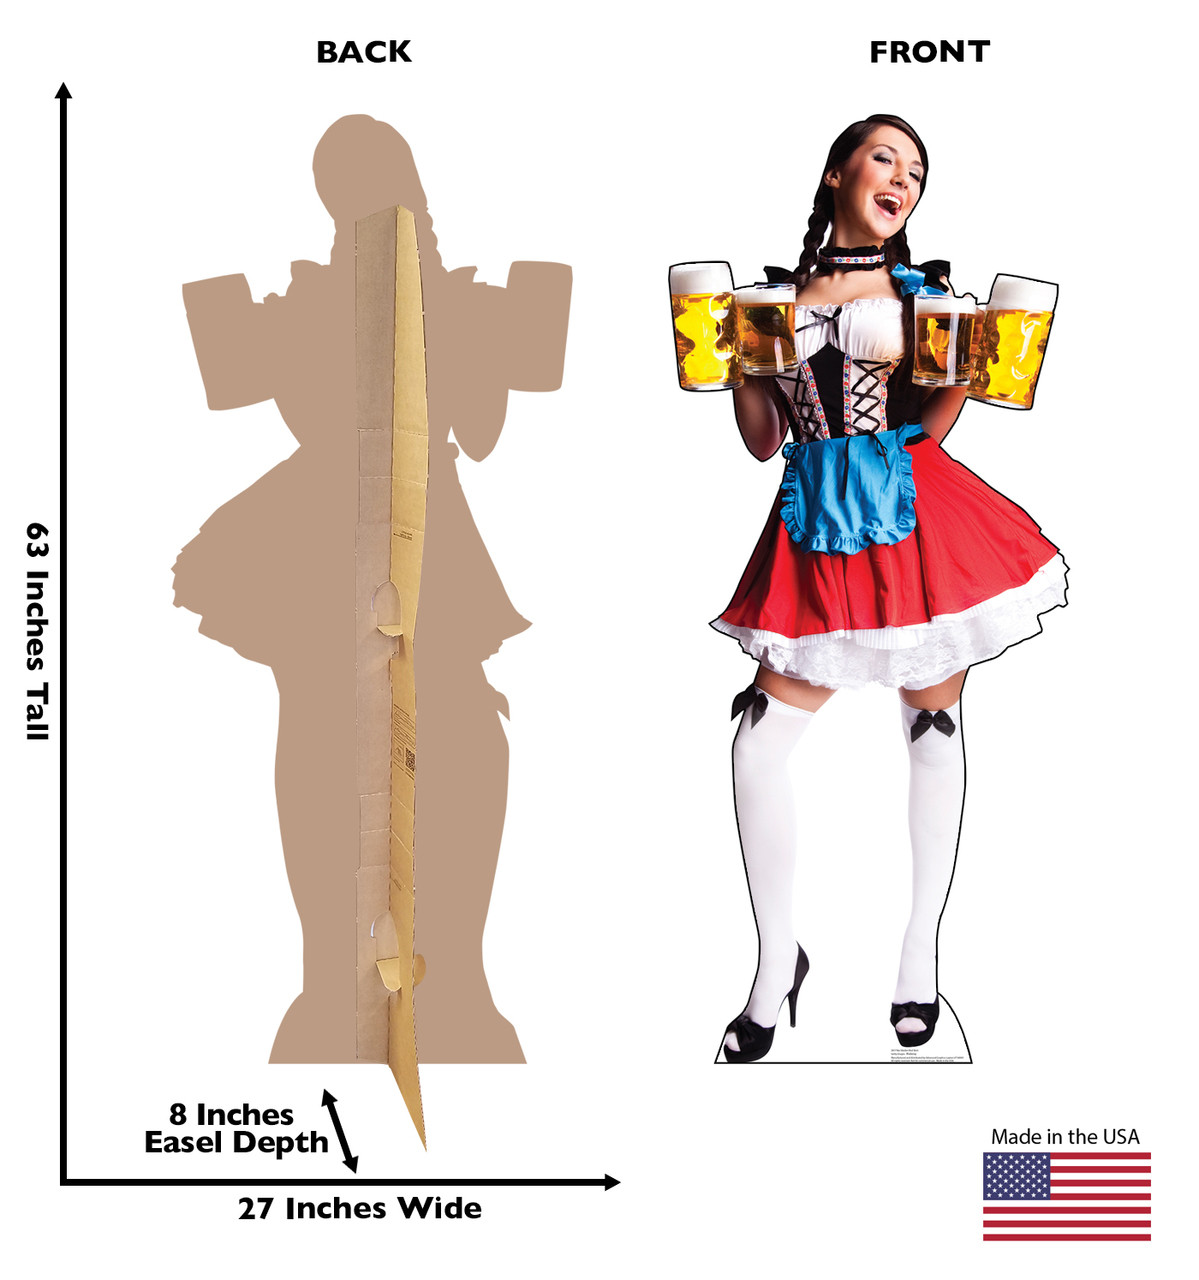 Life-size cardboard standee of a Bar Maiden in Red Skirt with back and front dimensions.